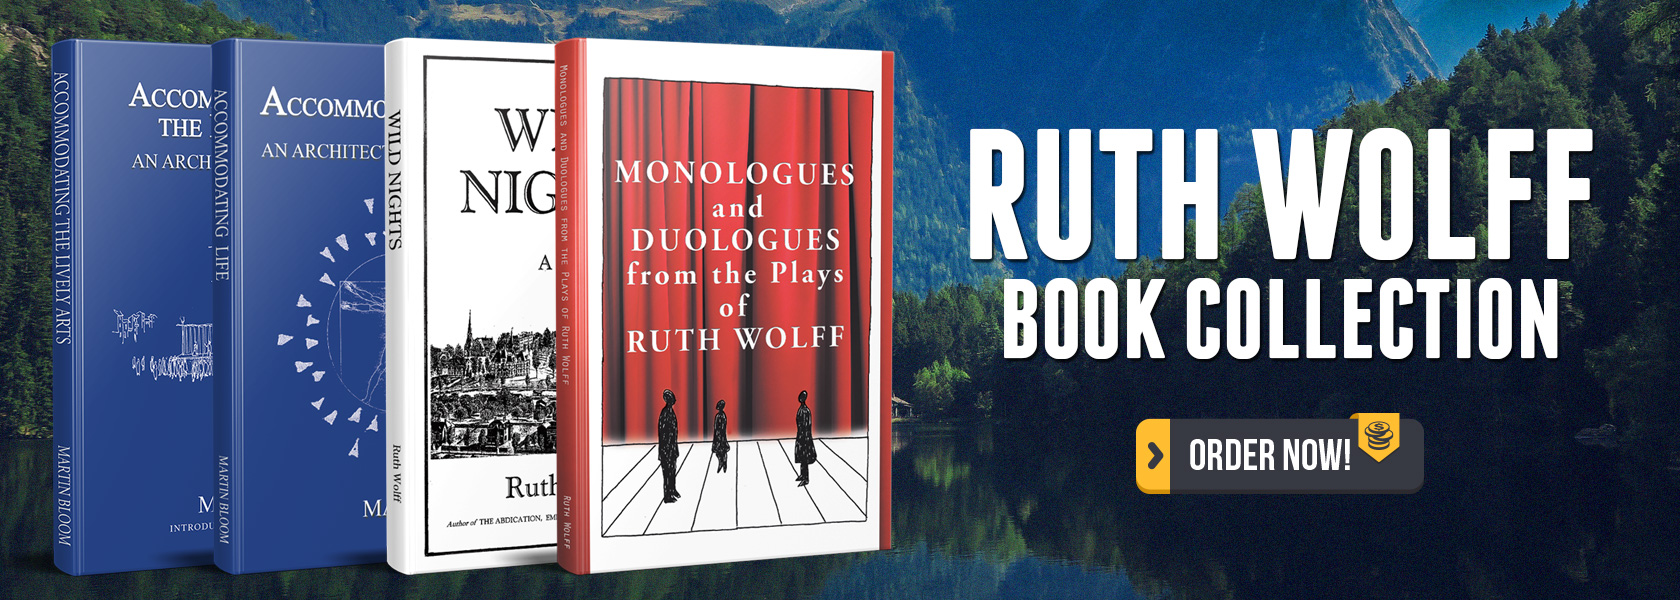 Ruth Wolff's Book Collection